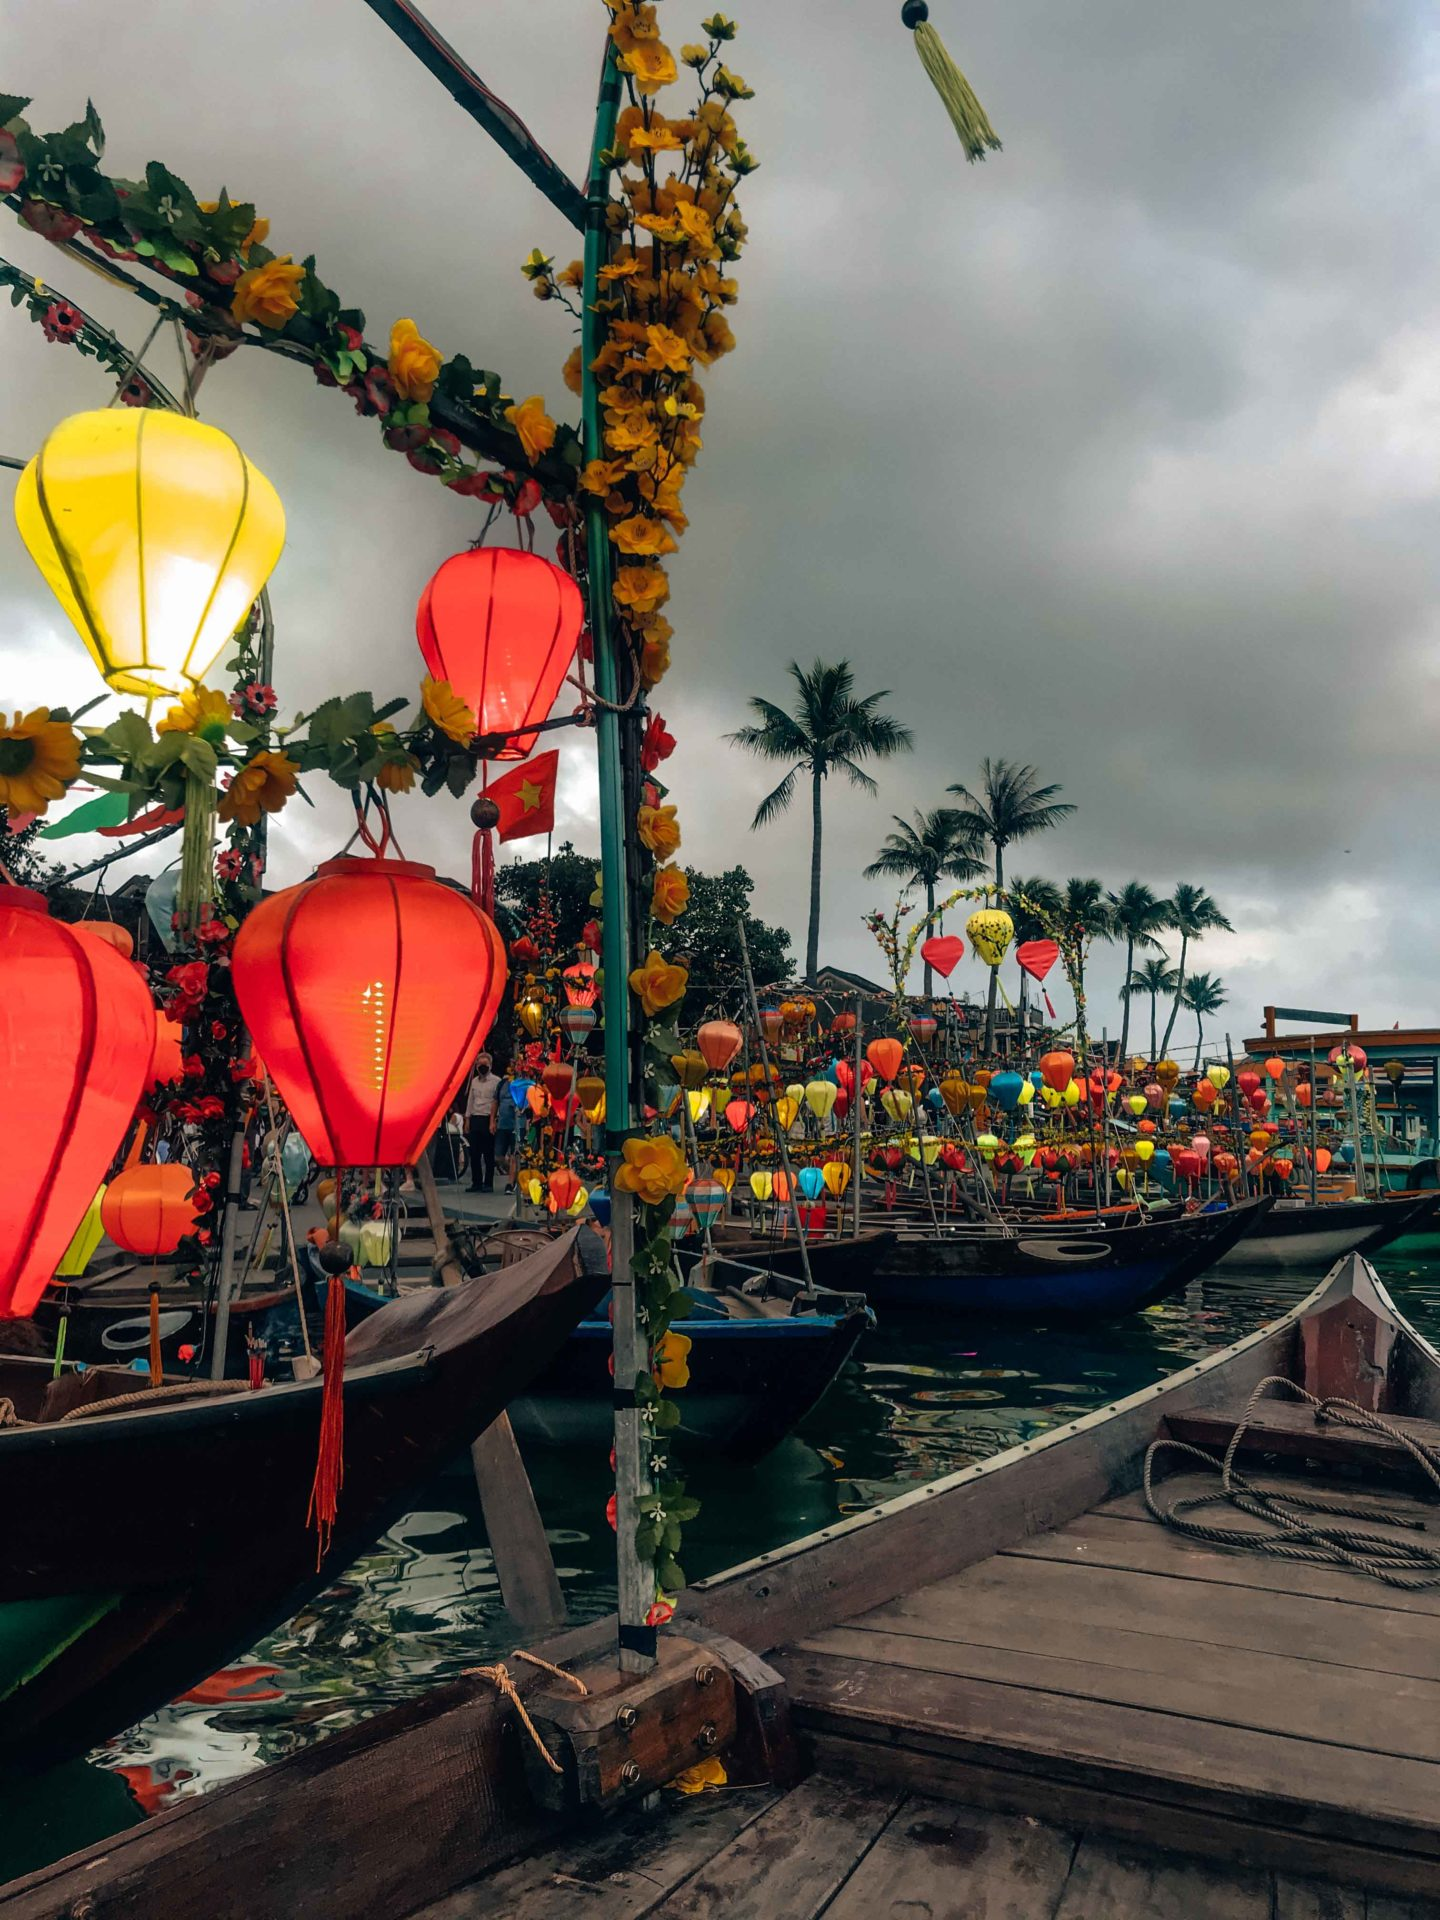 Magical Hoi An lanterns by night